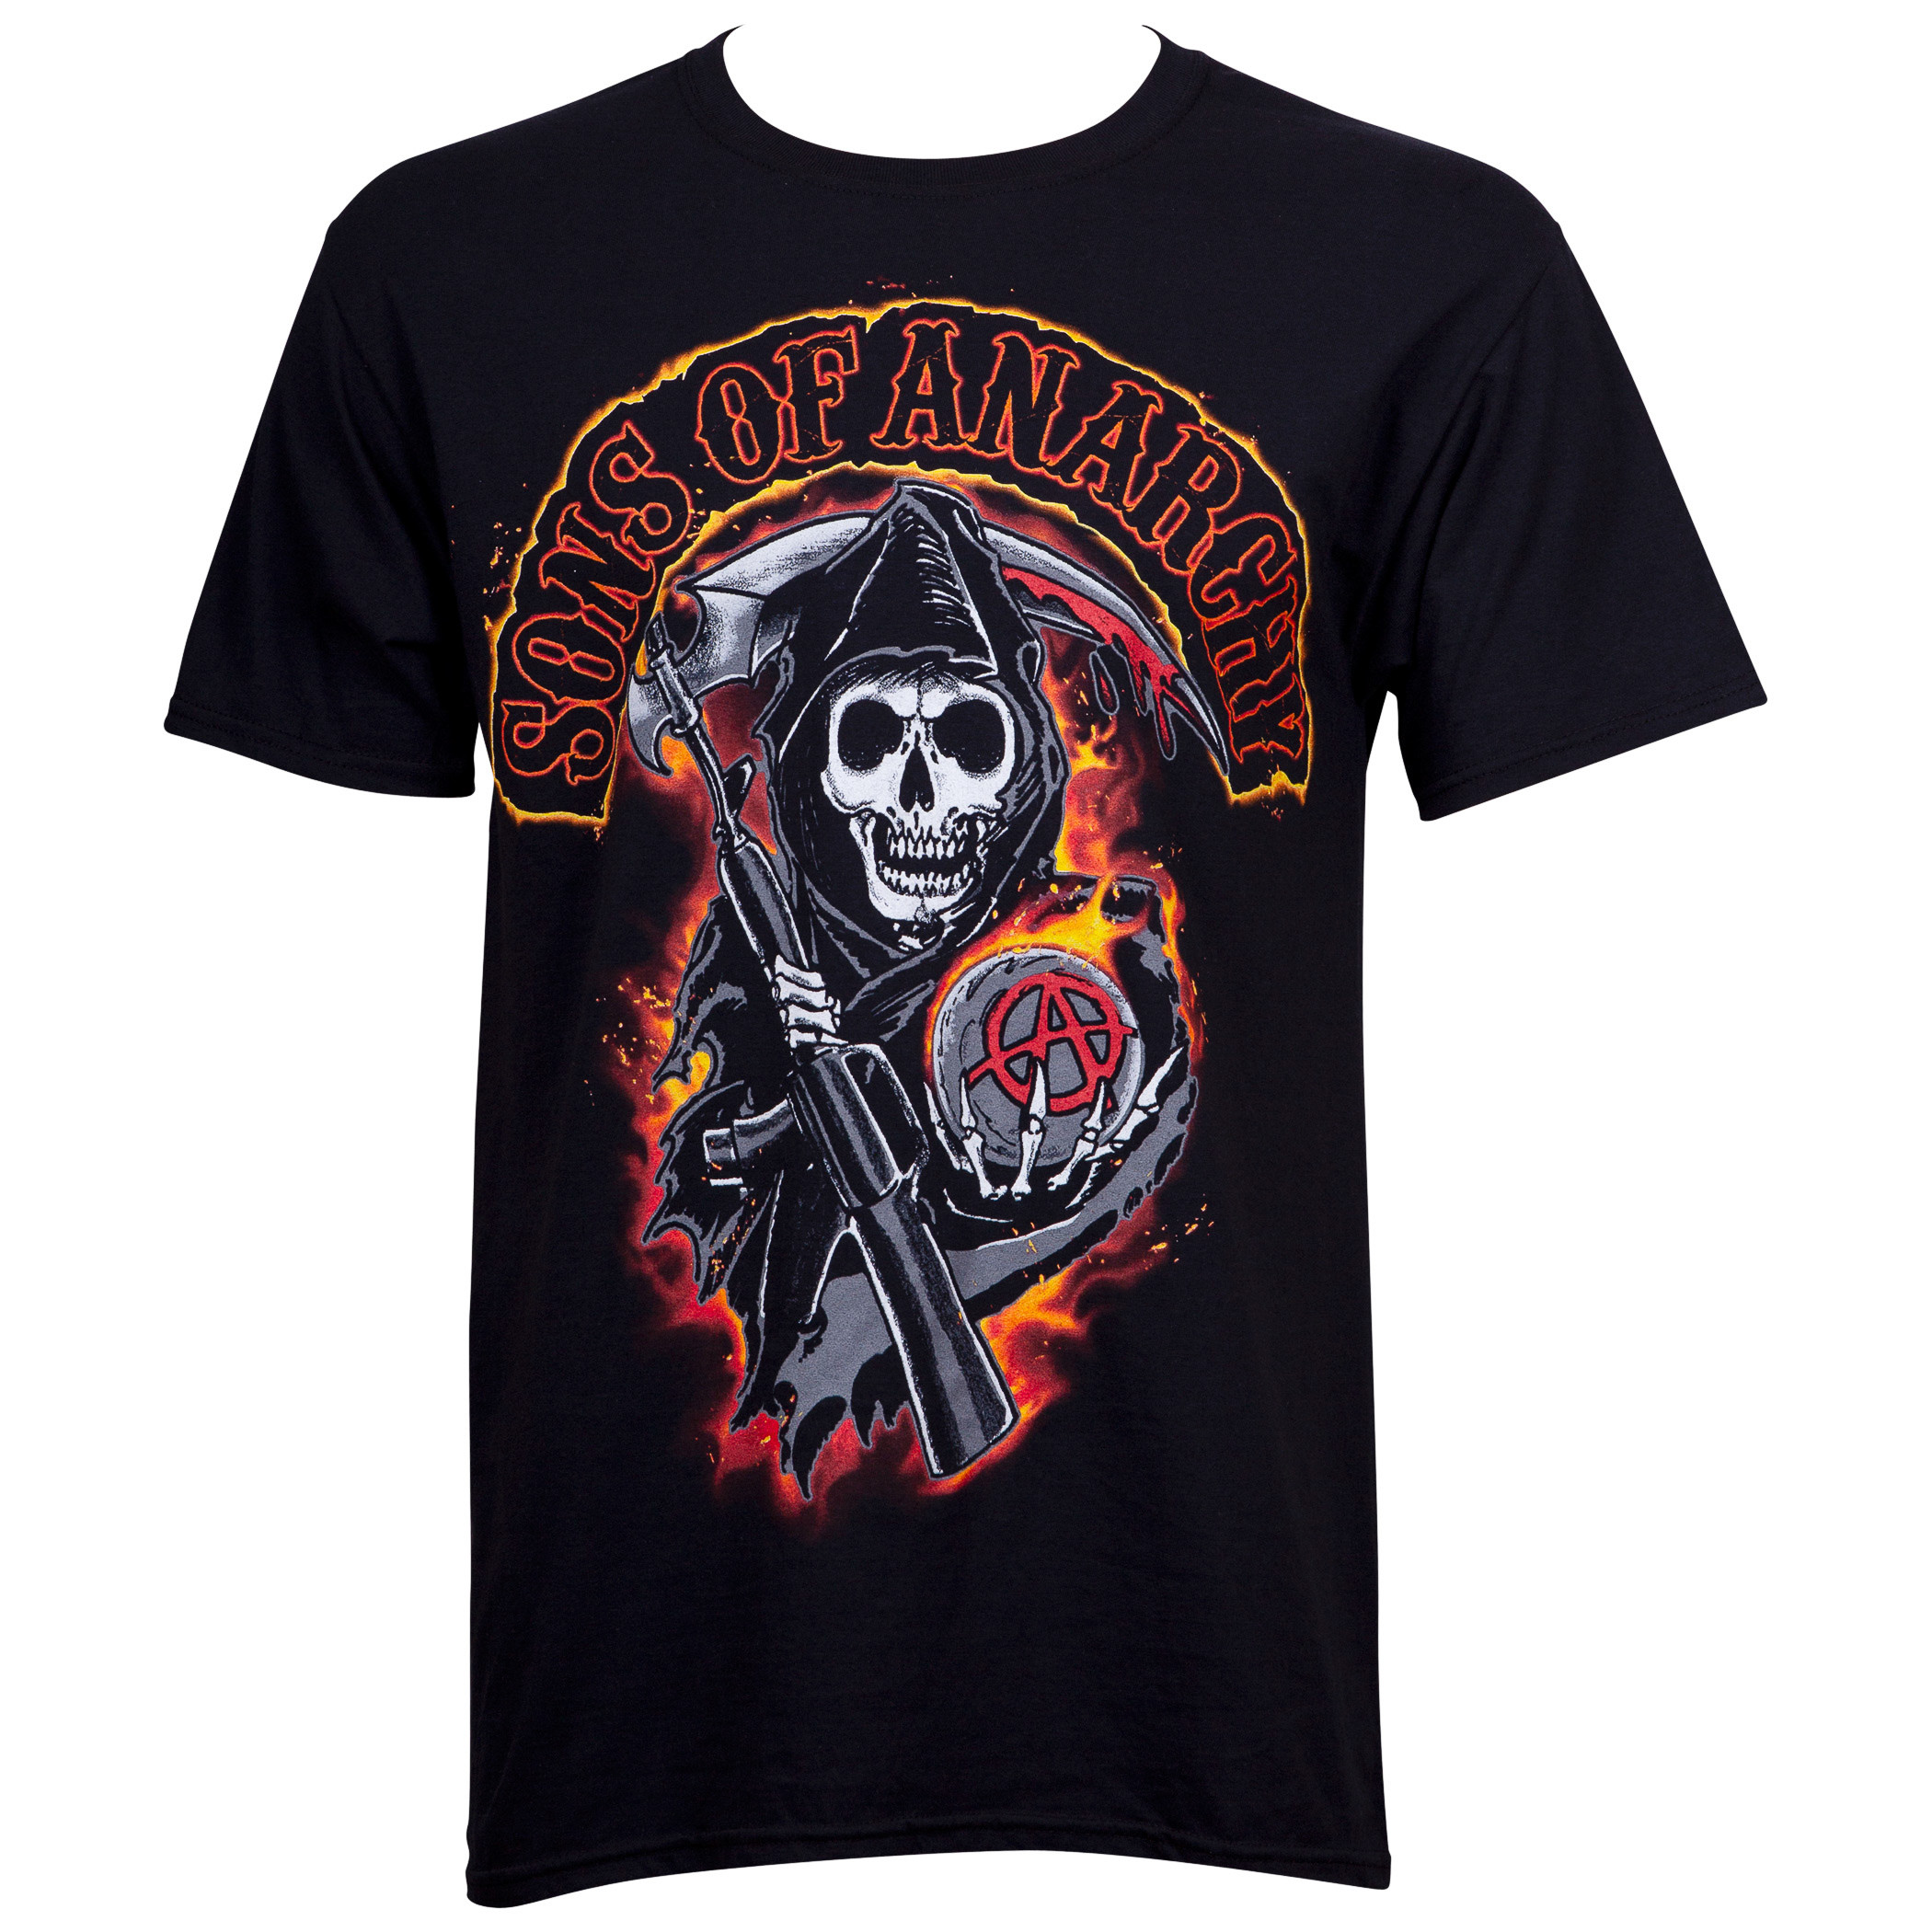 Sons of Anarchy Reaper in Flames Men's Black T-Shirt